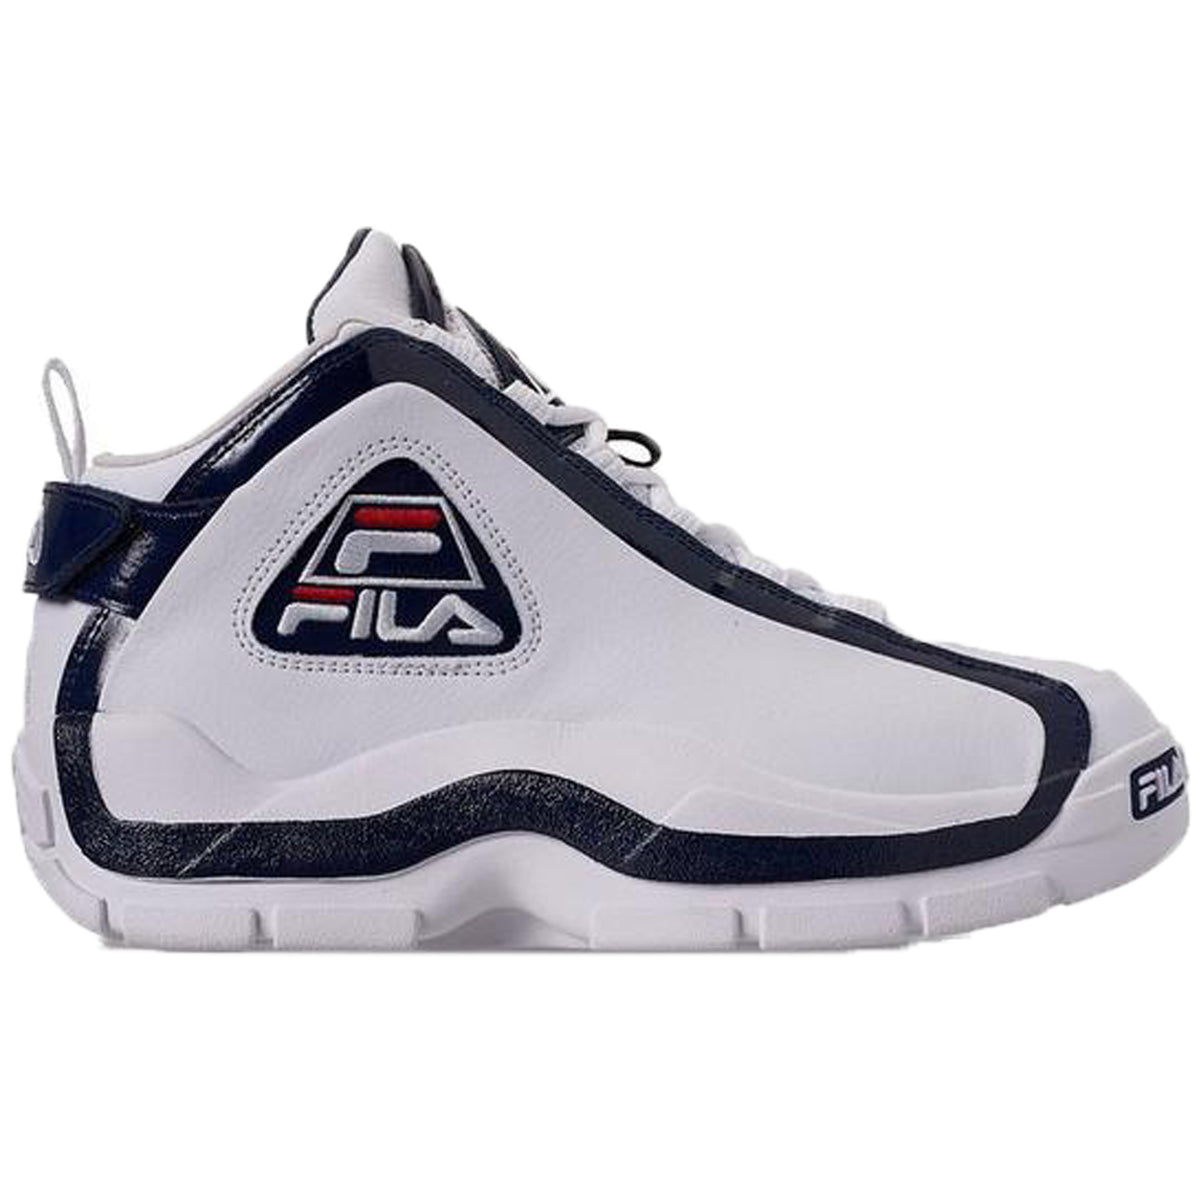 Fila Men's 96 Grant Hill Retro Basketball Shoes White Navy Red 1BM00569 125